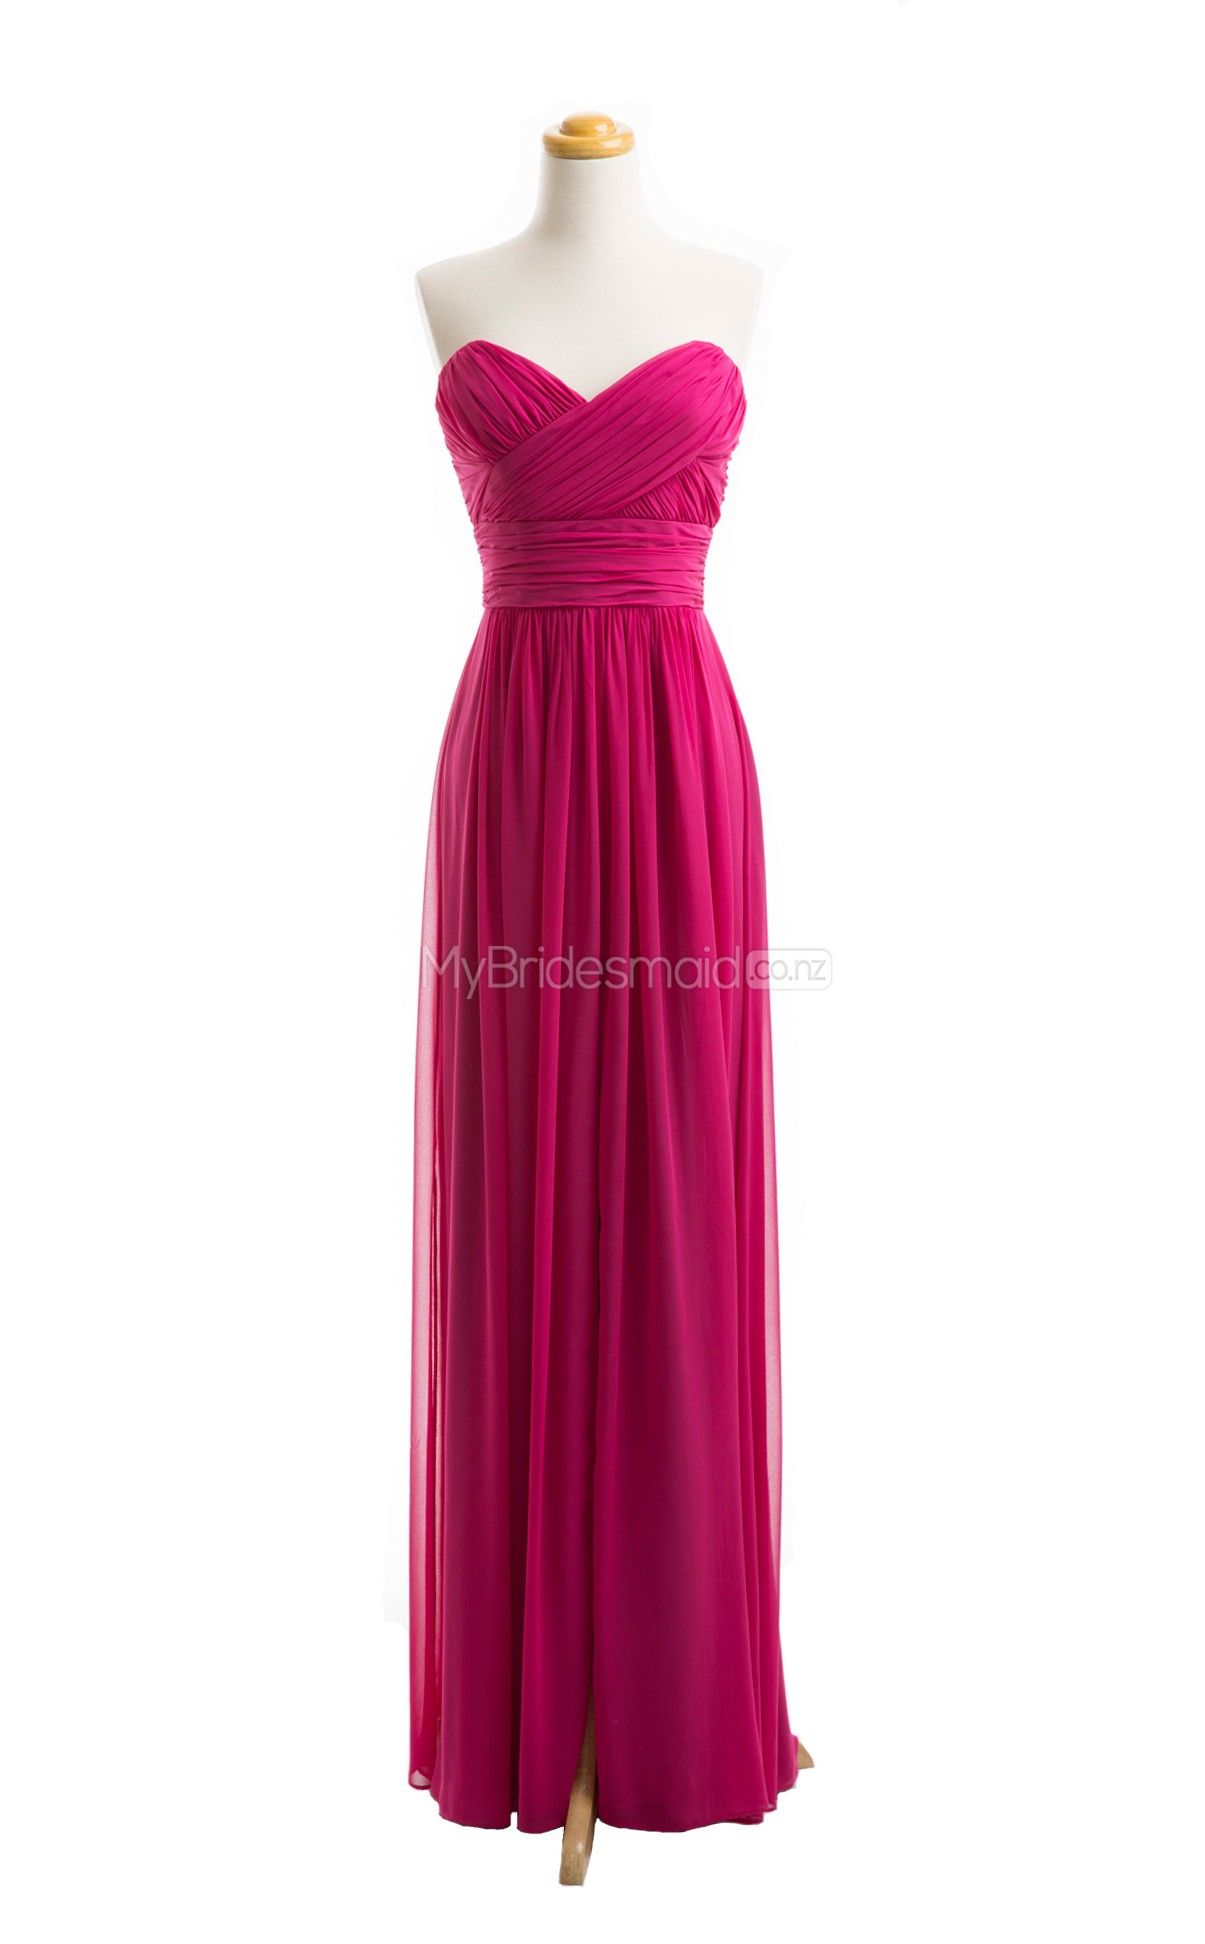 Vogue Fuchsia Bridesmaid Dresses